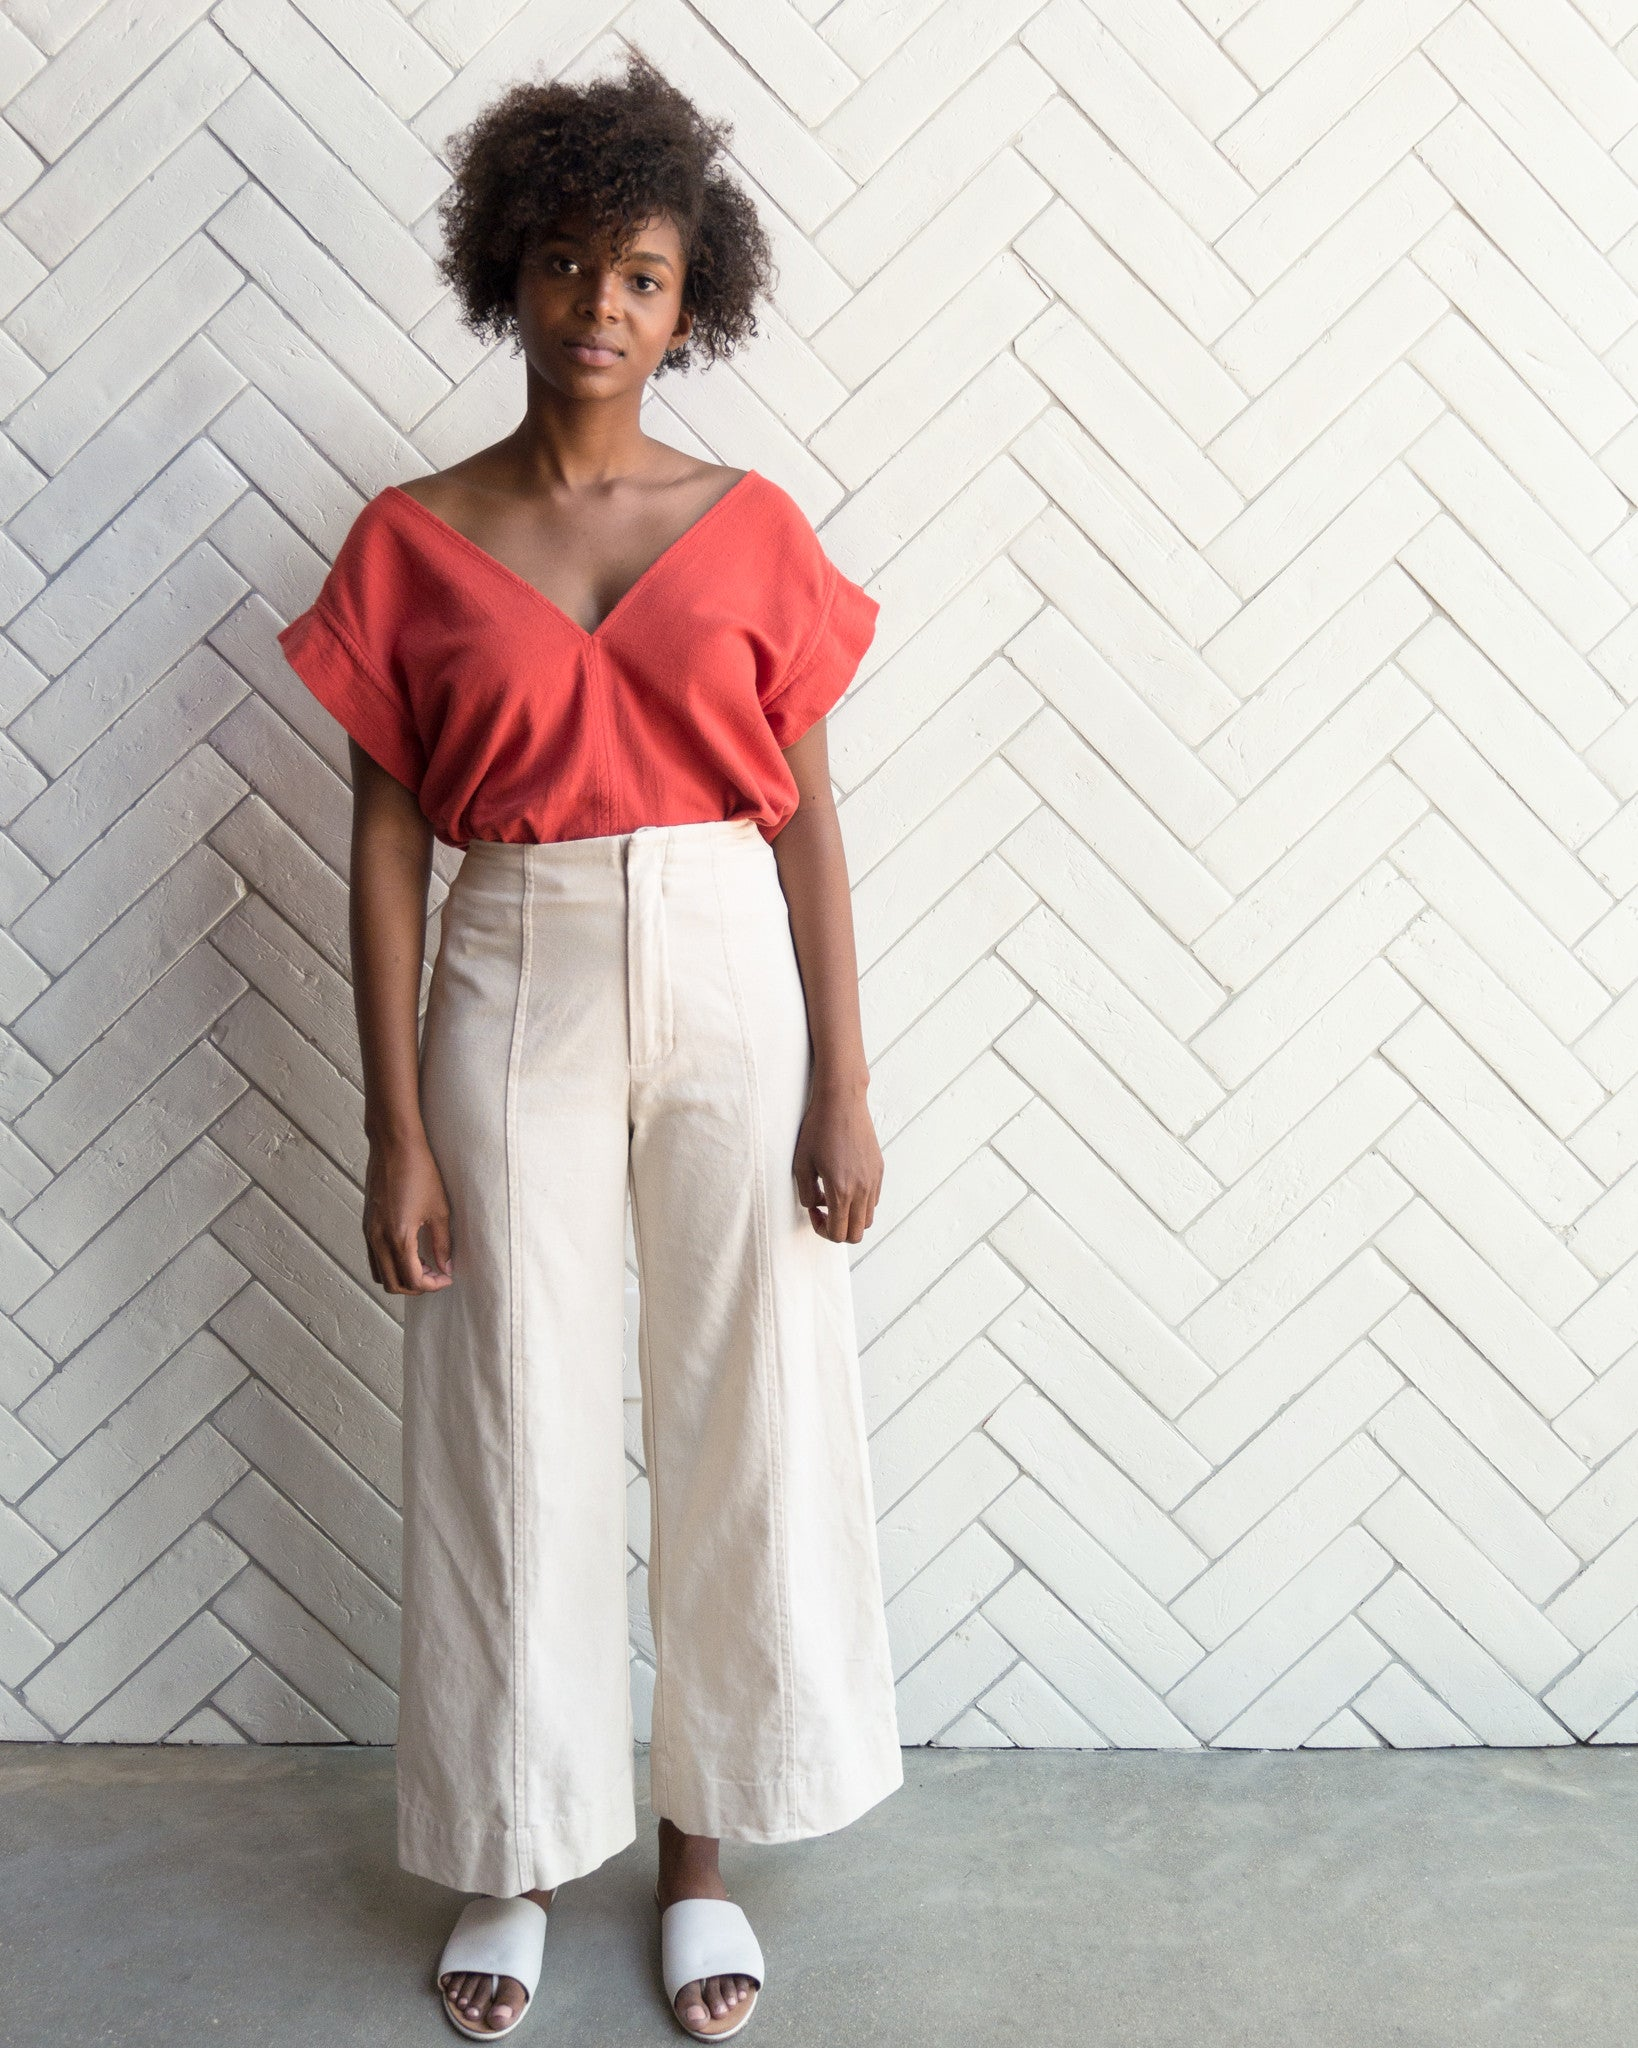 esby-apparel-womenswear-designed-in-austin-made-in-usa-rose-top-tomato